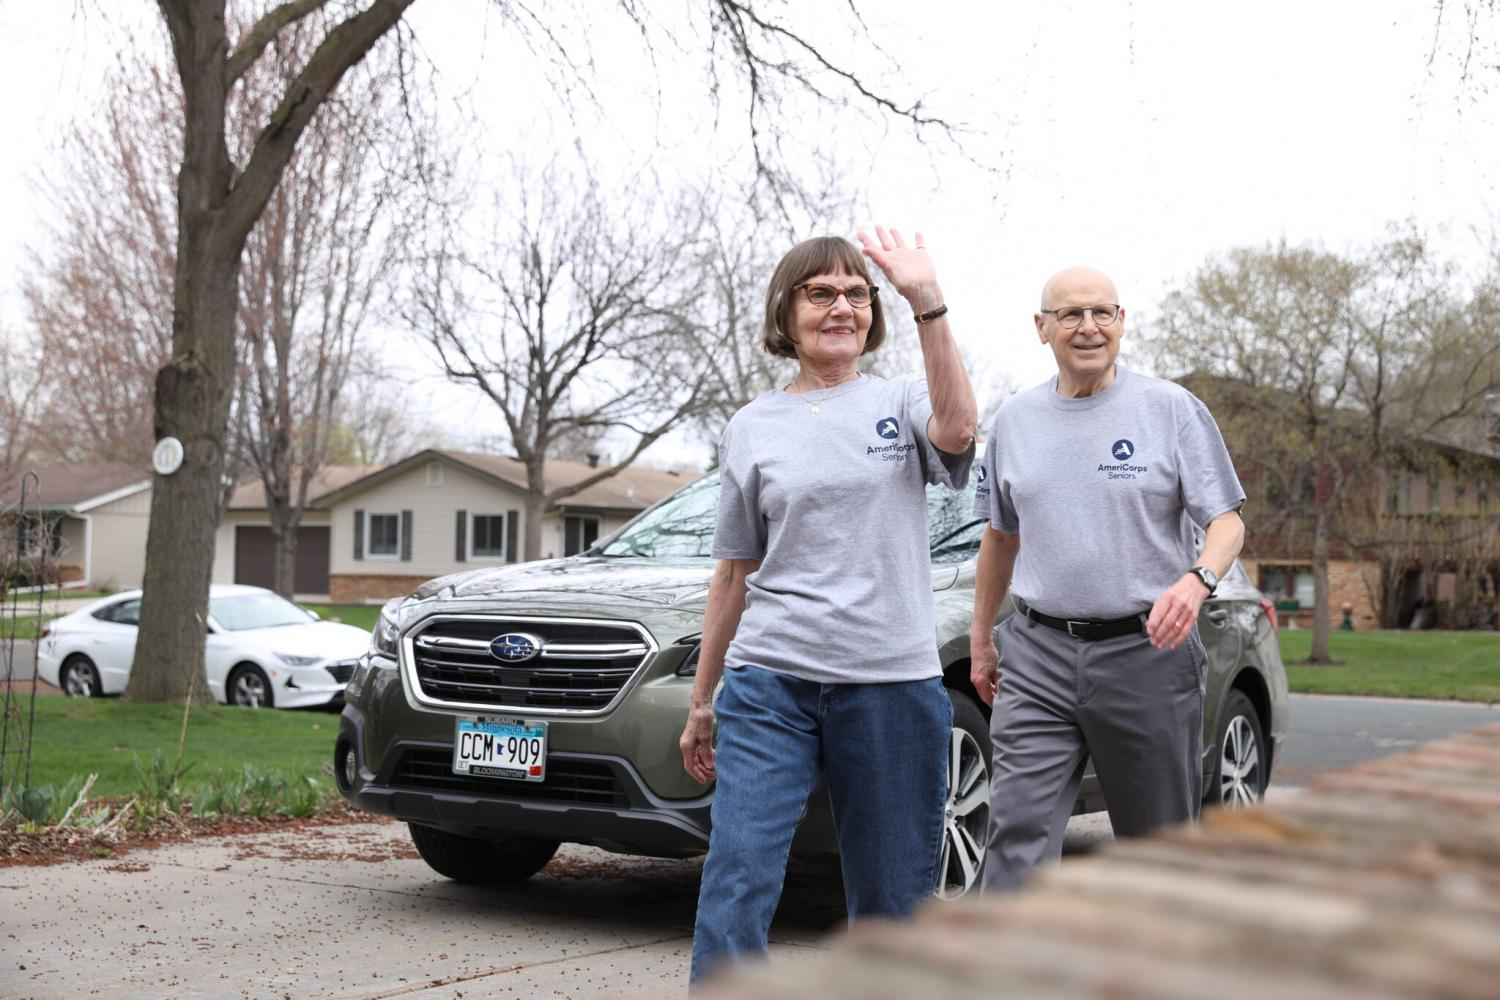 AmeriCorps Seniors Bill and Barb deliver meals to their neighbors